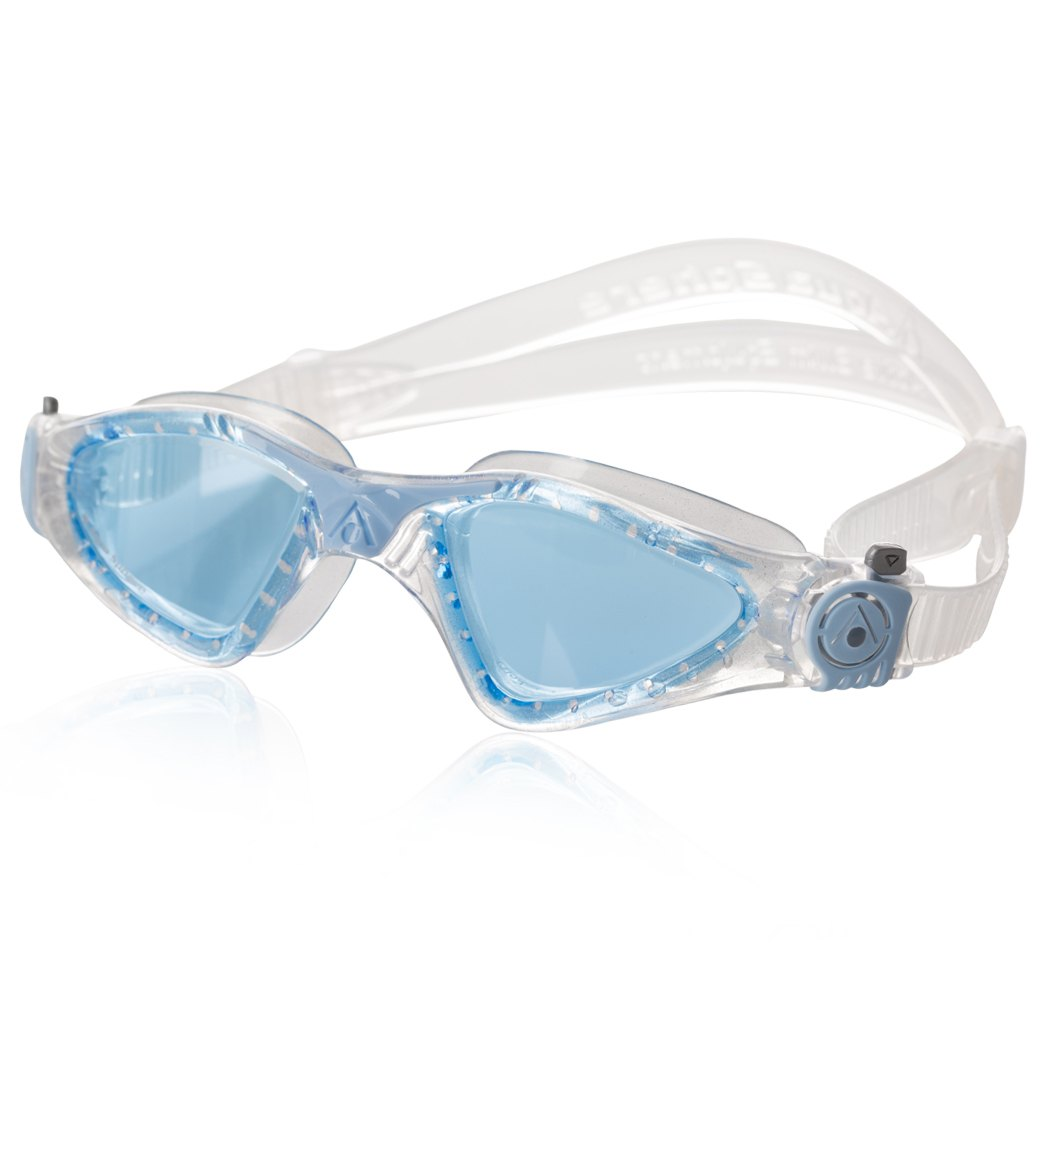 252557f799 Aqua Sphere Kayenne Lady Goggle Blue Lens at SwimOutlet.com